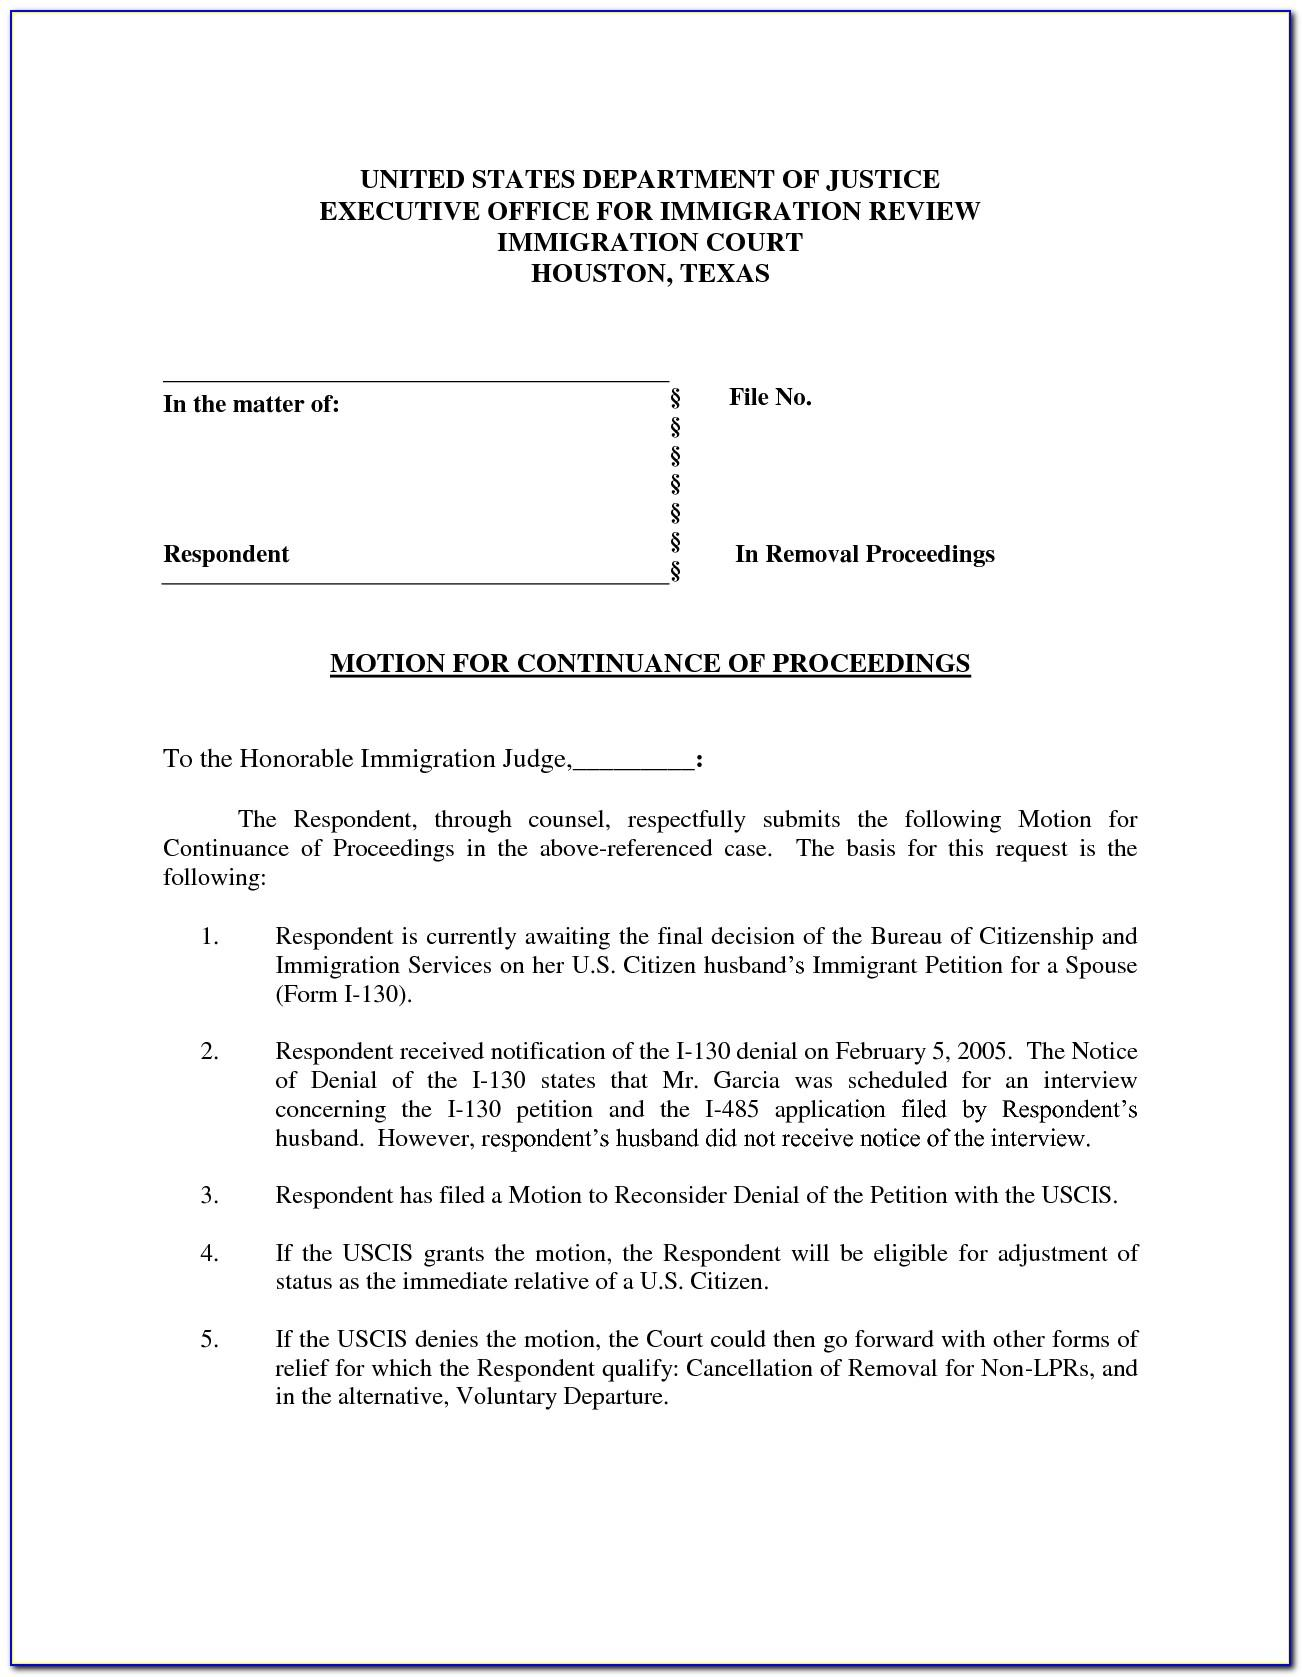 Motion For Continuance Form New Mexico